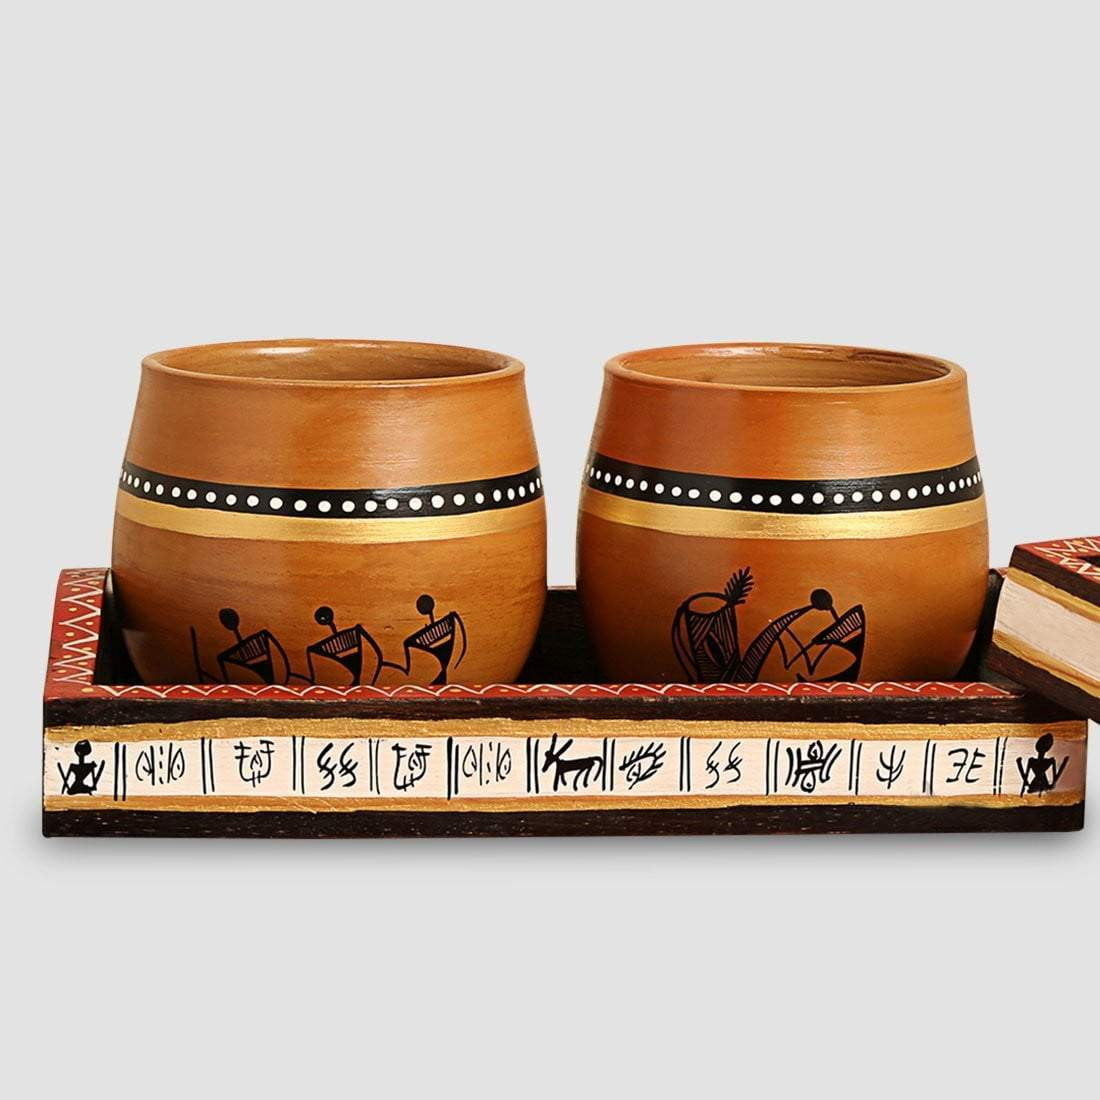 Warli Art Wooden Tray With Two Kulhads / Earthen Pots